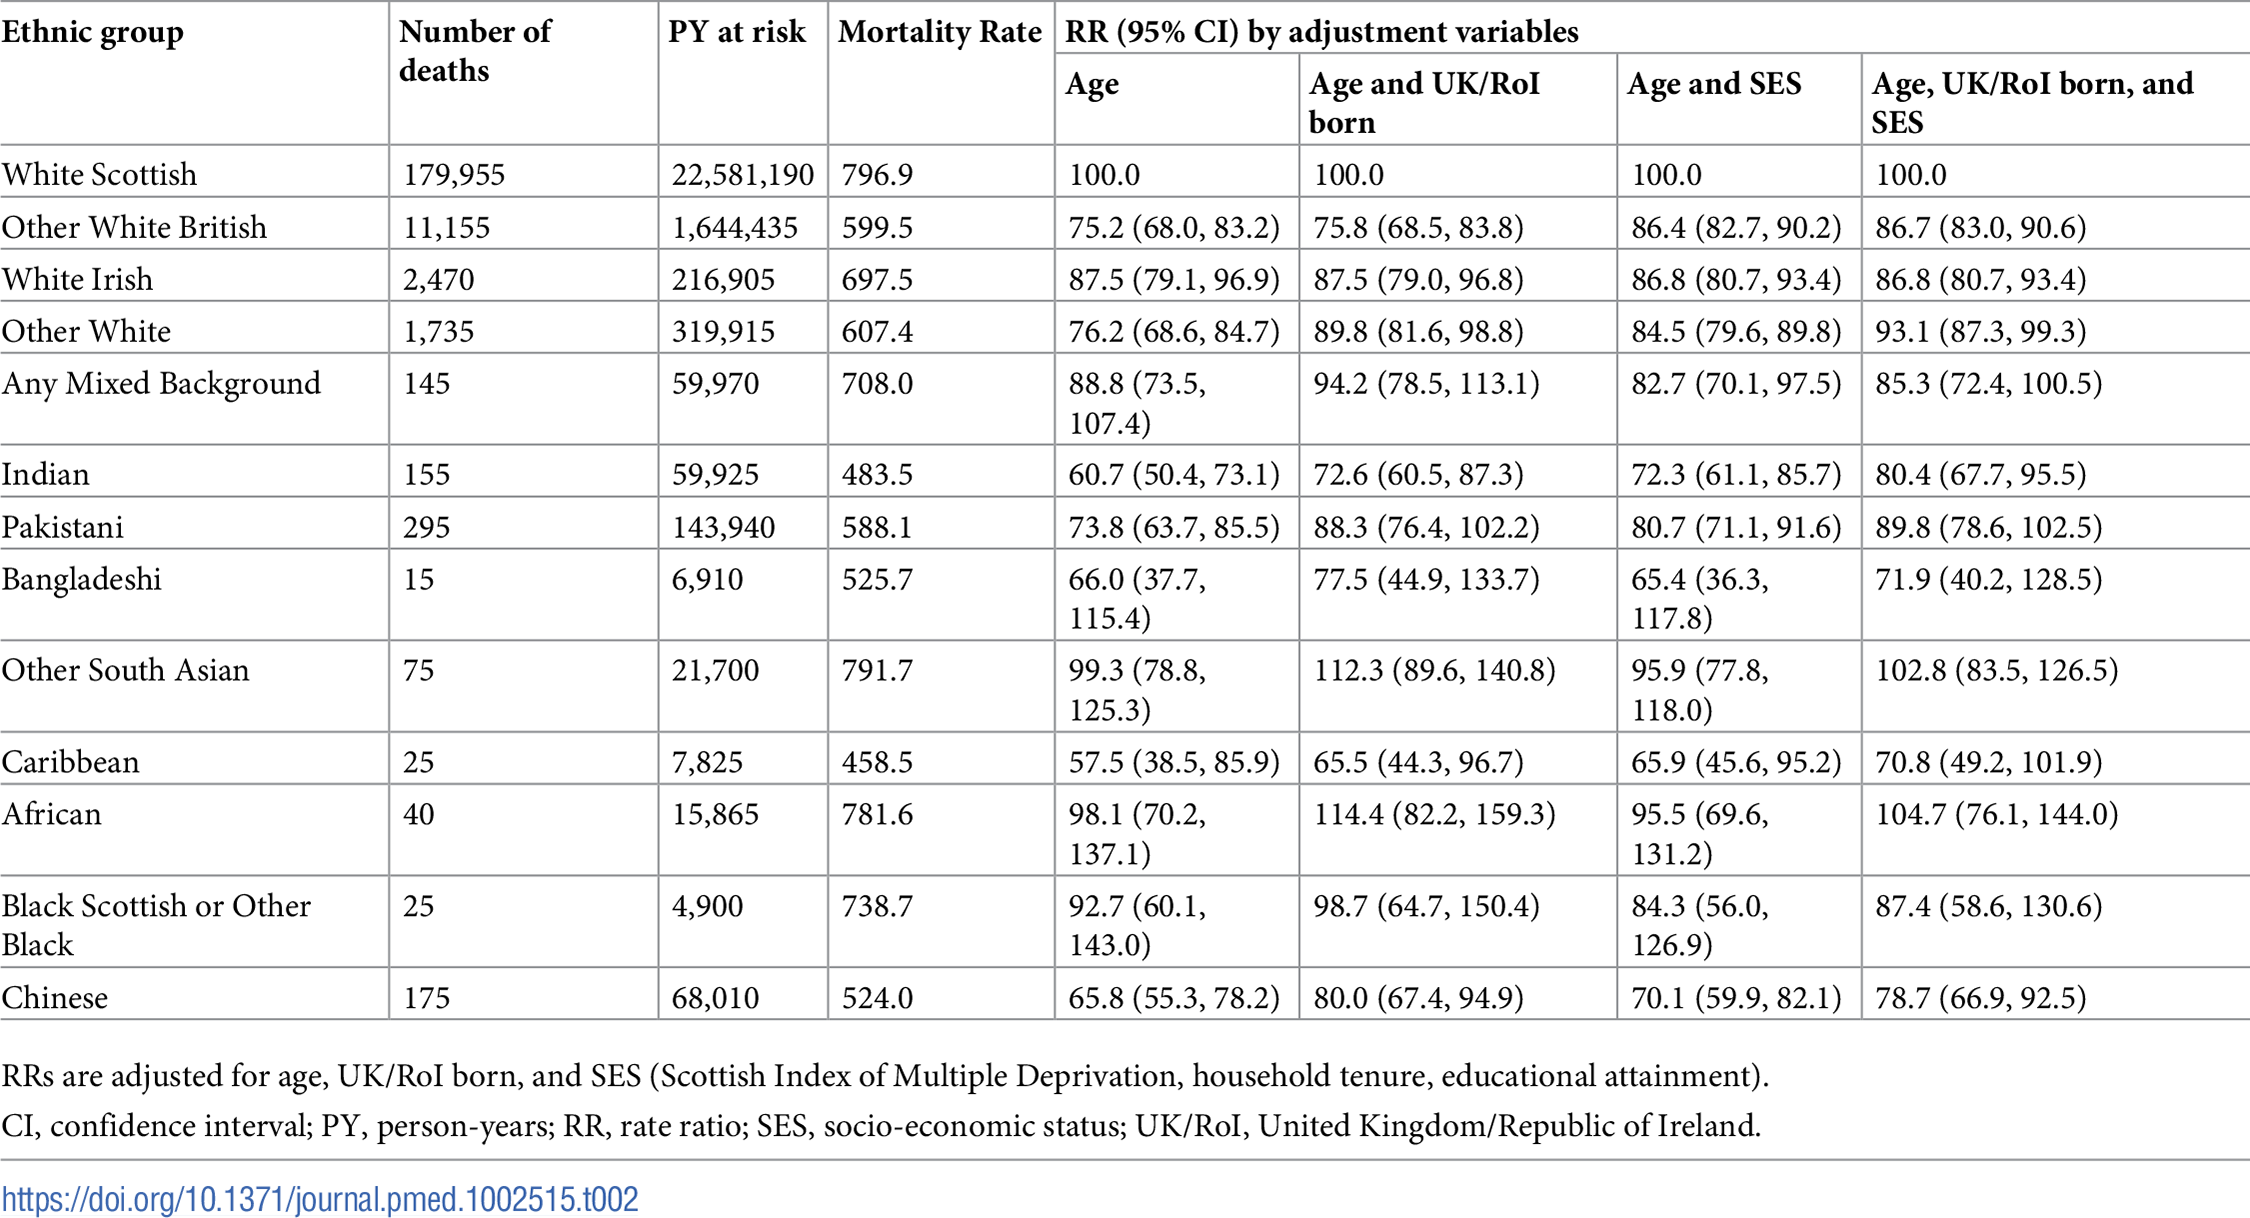 Age-adjusted mortality rates per 100,000 PY and RRs for all-cause mortality by ethnic group in females.